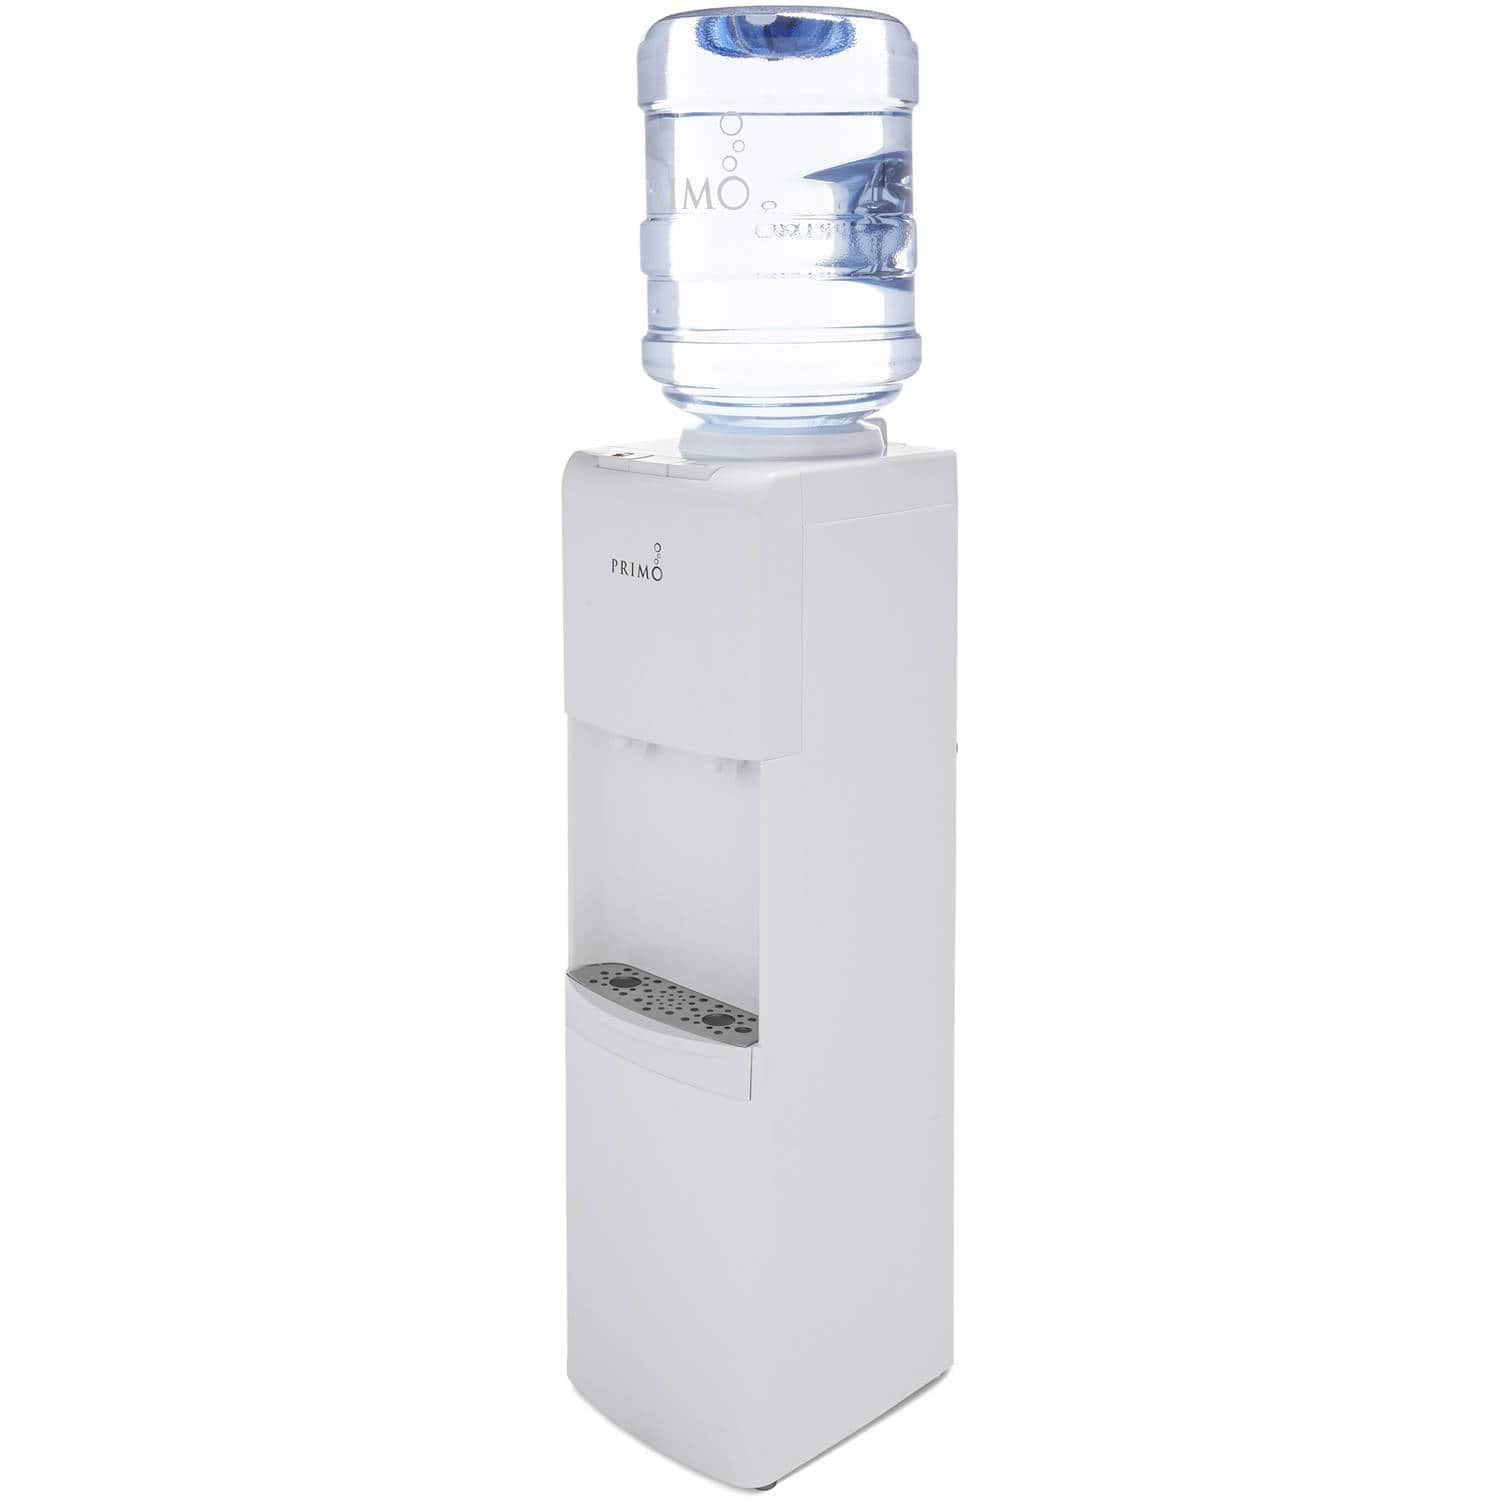 Primo Top Loading Hot / Cold Water Dispenser (White) $59 w/ Free Store Pick Up